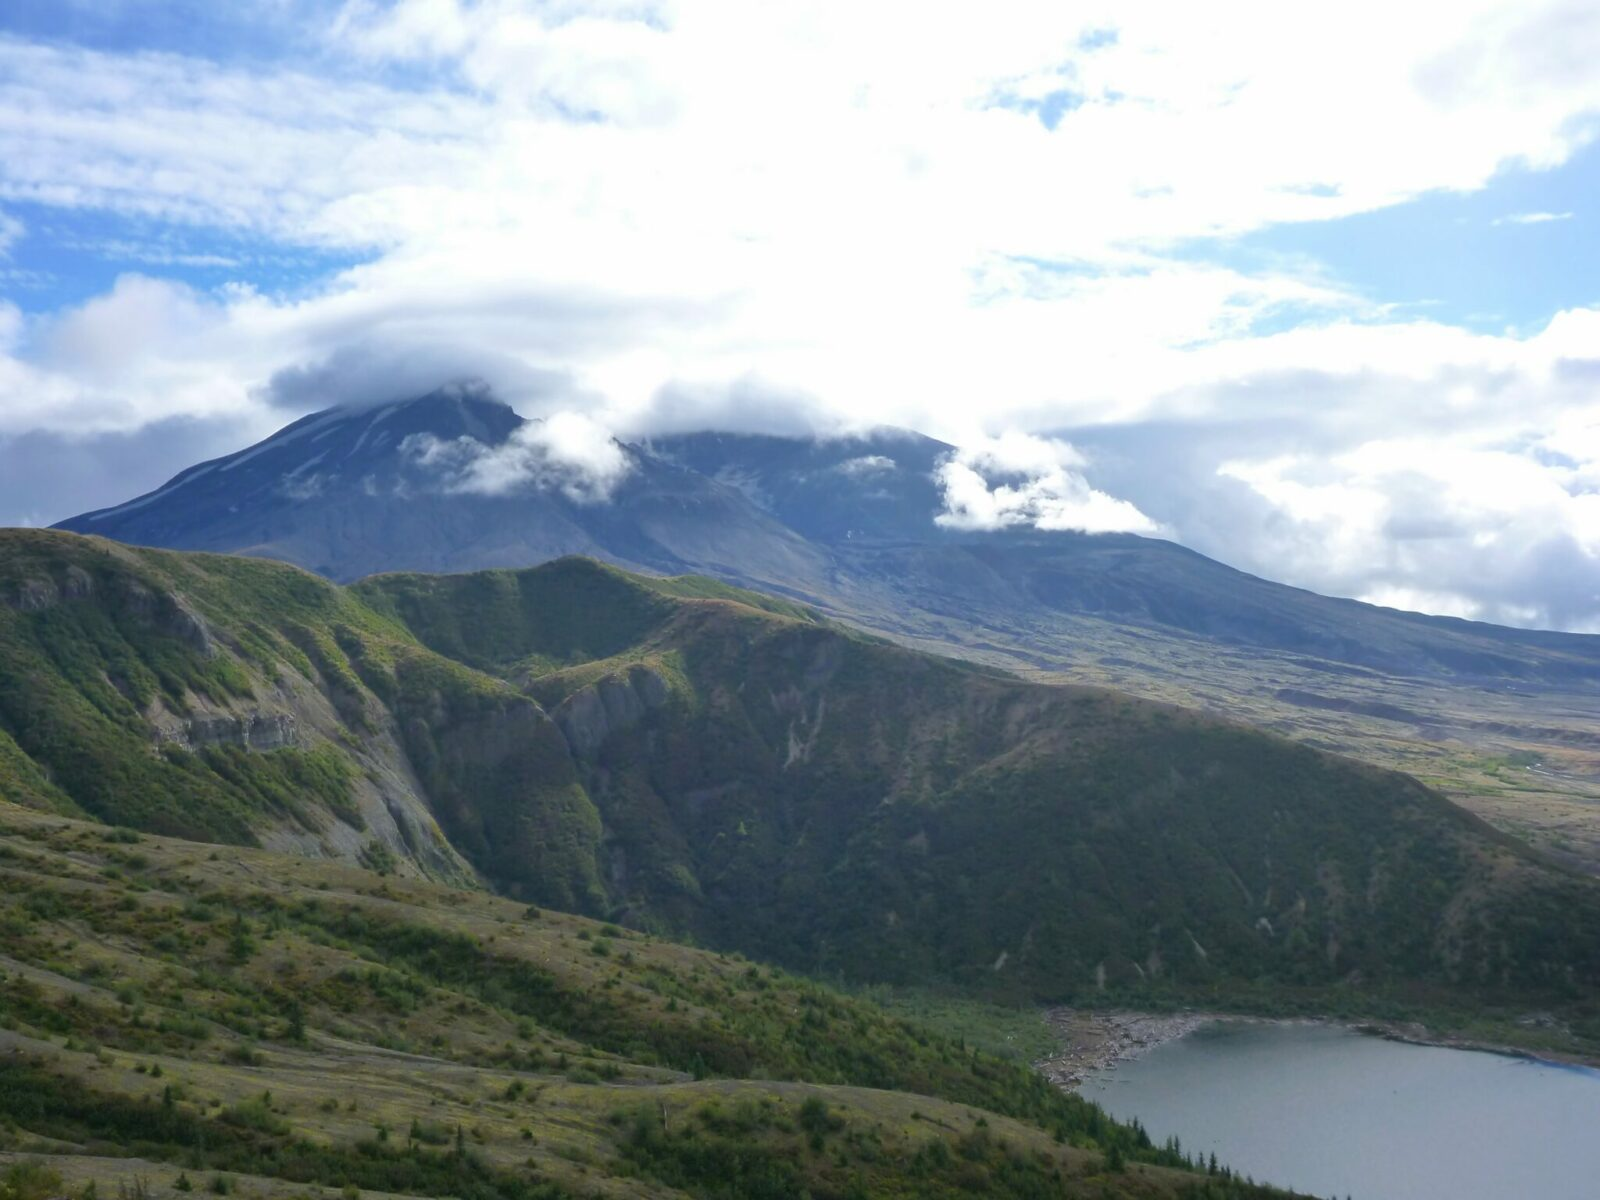 Forested and shrub covered hillsides above a lake with the crater of Mt St Helens in the distance, partially covered by clouds